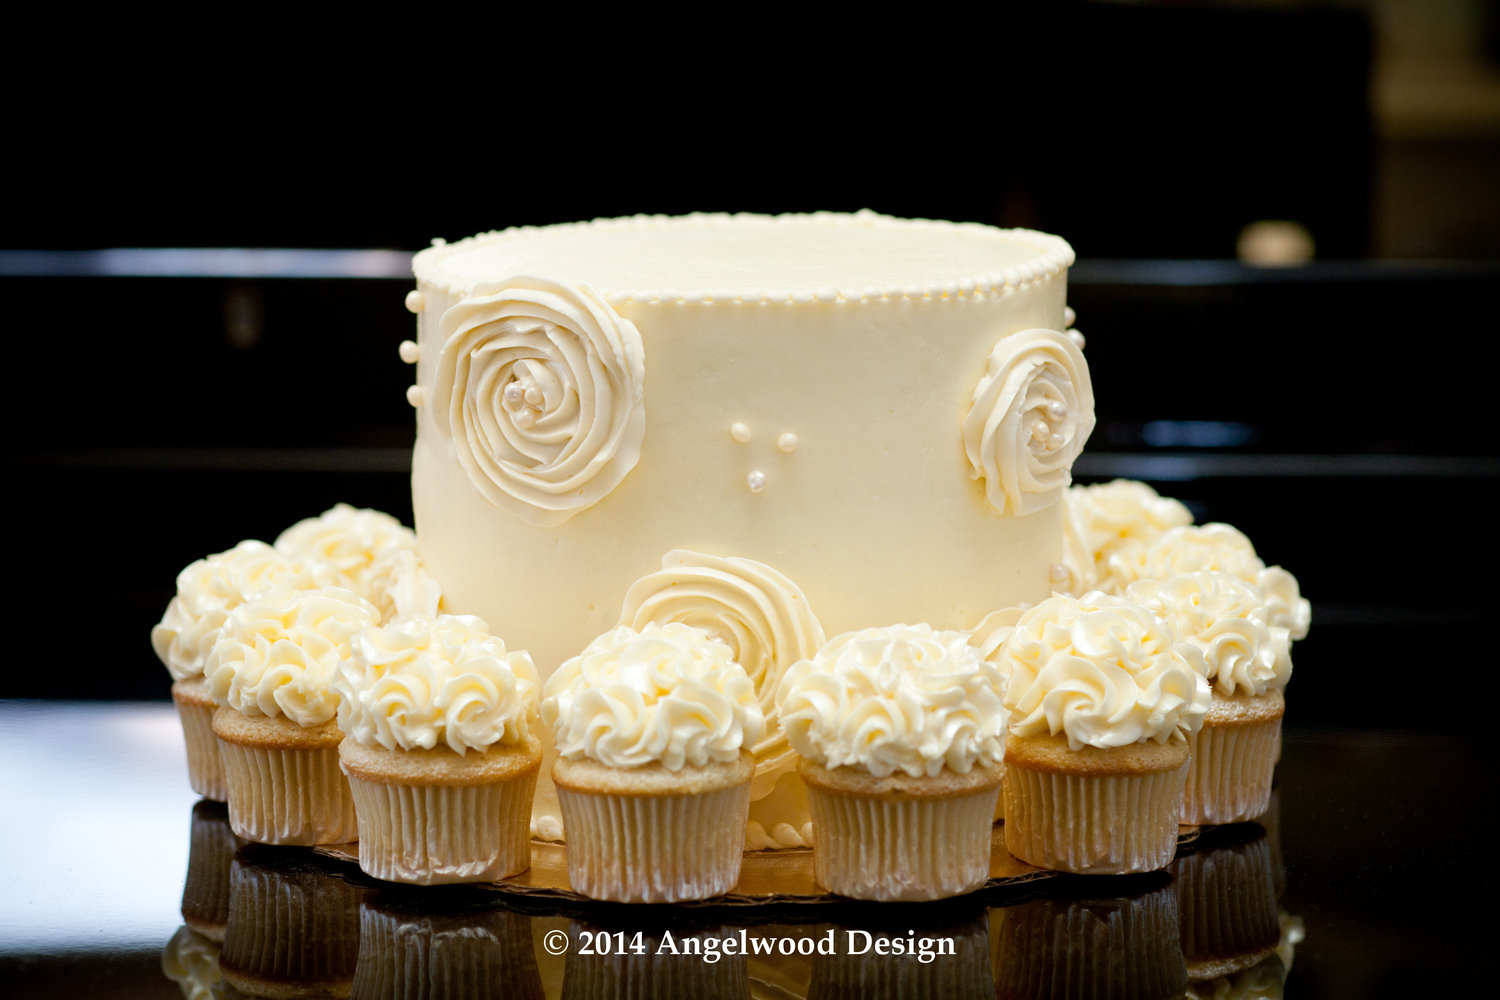 Wedding Cakes Normal Il - 5000+ Simple Wedding Cakes